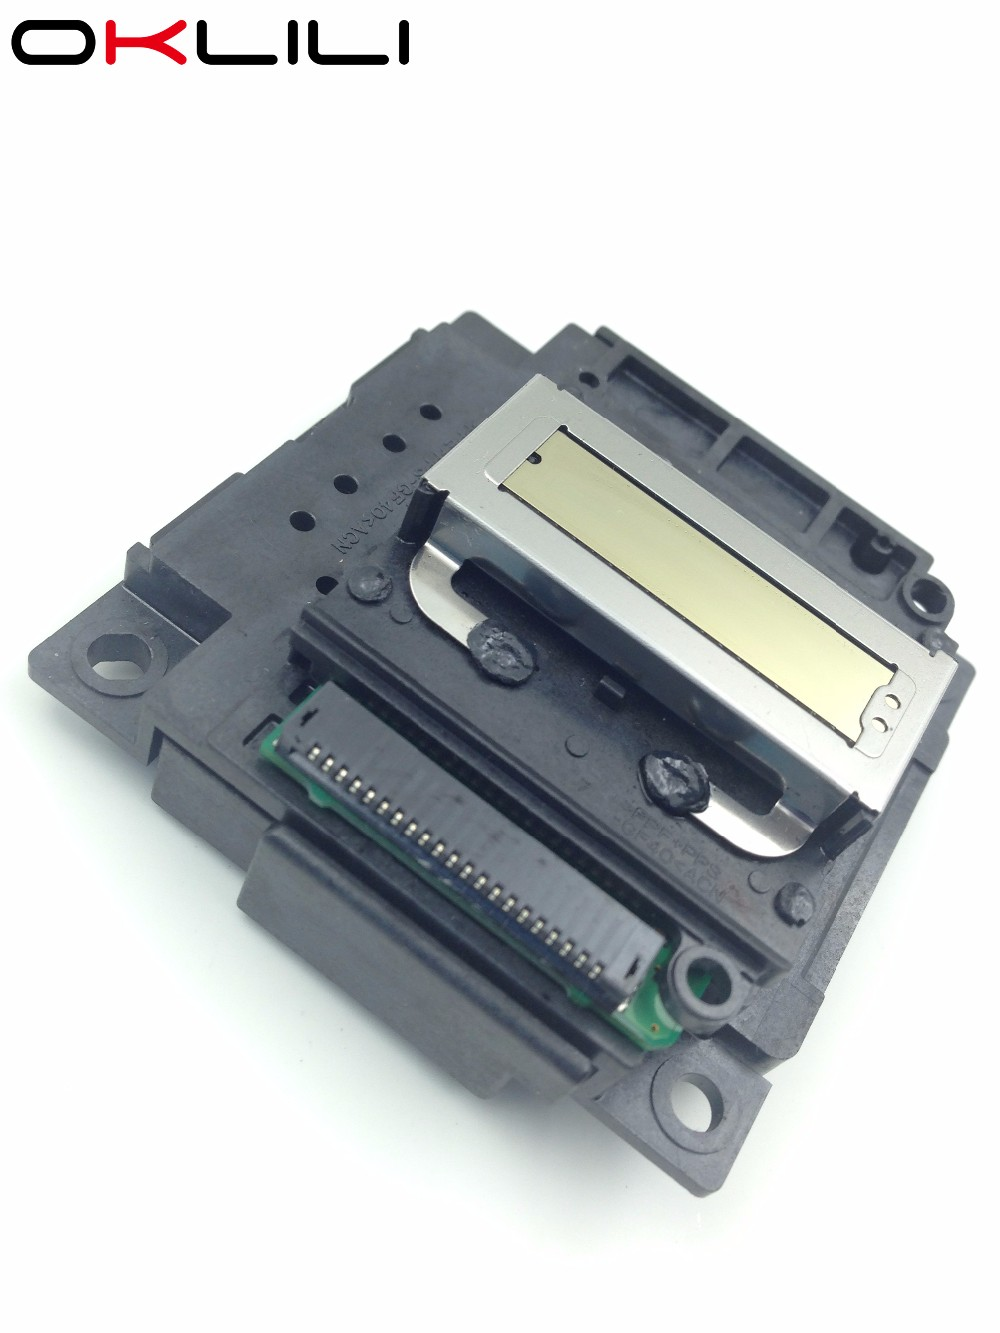 FA04010 FA04000 Printhead Print Head for Epson L132 L130 L220 L222 L310 L362 L365 L366 L455 L456 L565 L566 WF-2630 XP-332 WF2630 2pc printhead printer print head cable for epson l351 l353 l355 l358 l362 l365 l366 l381 l455 l456 l550 l551 l555 l558 l565 l566